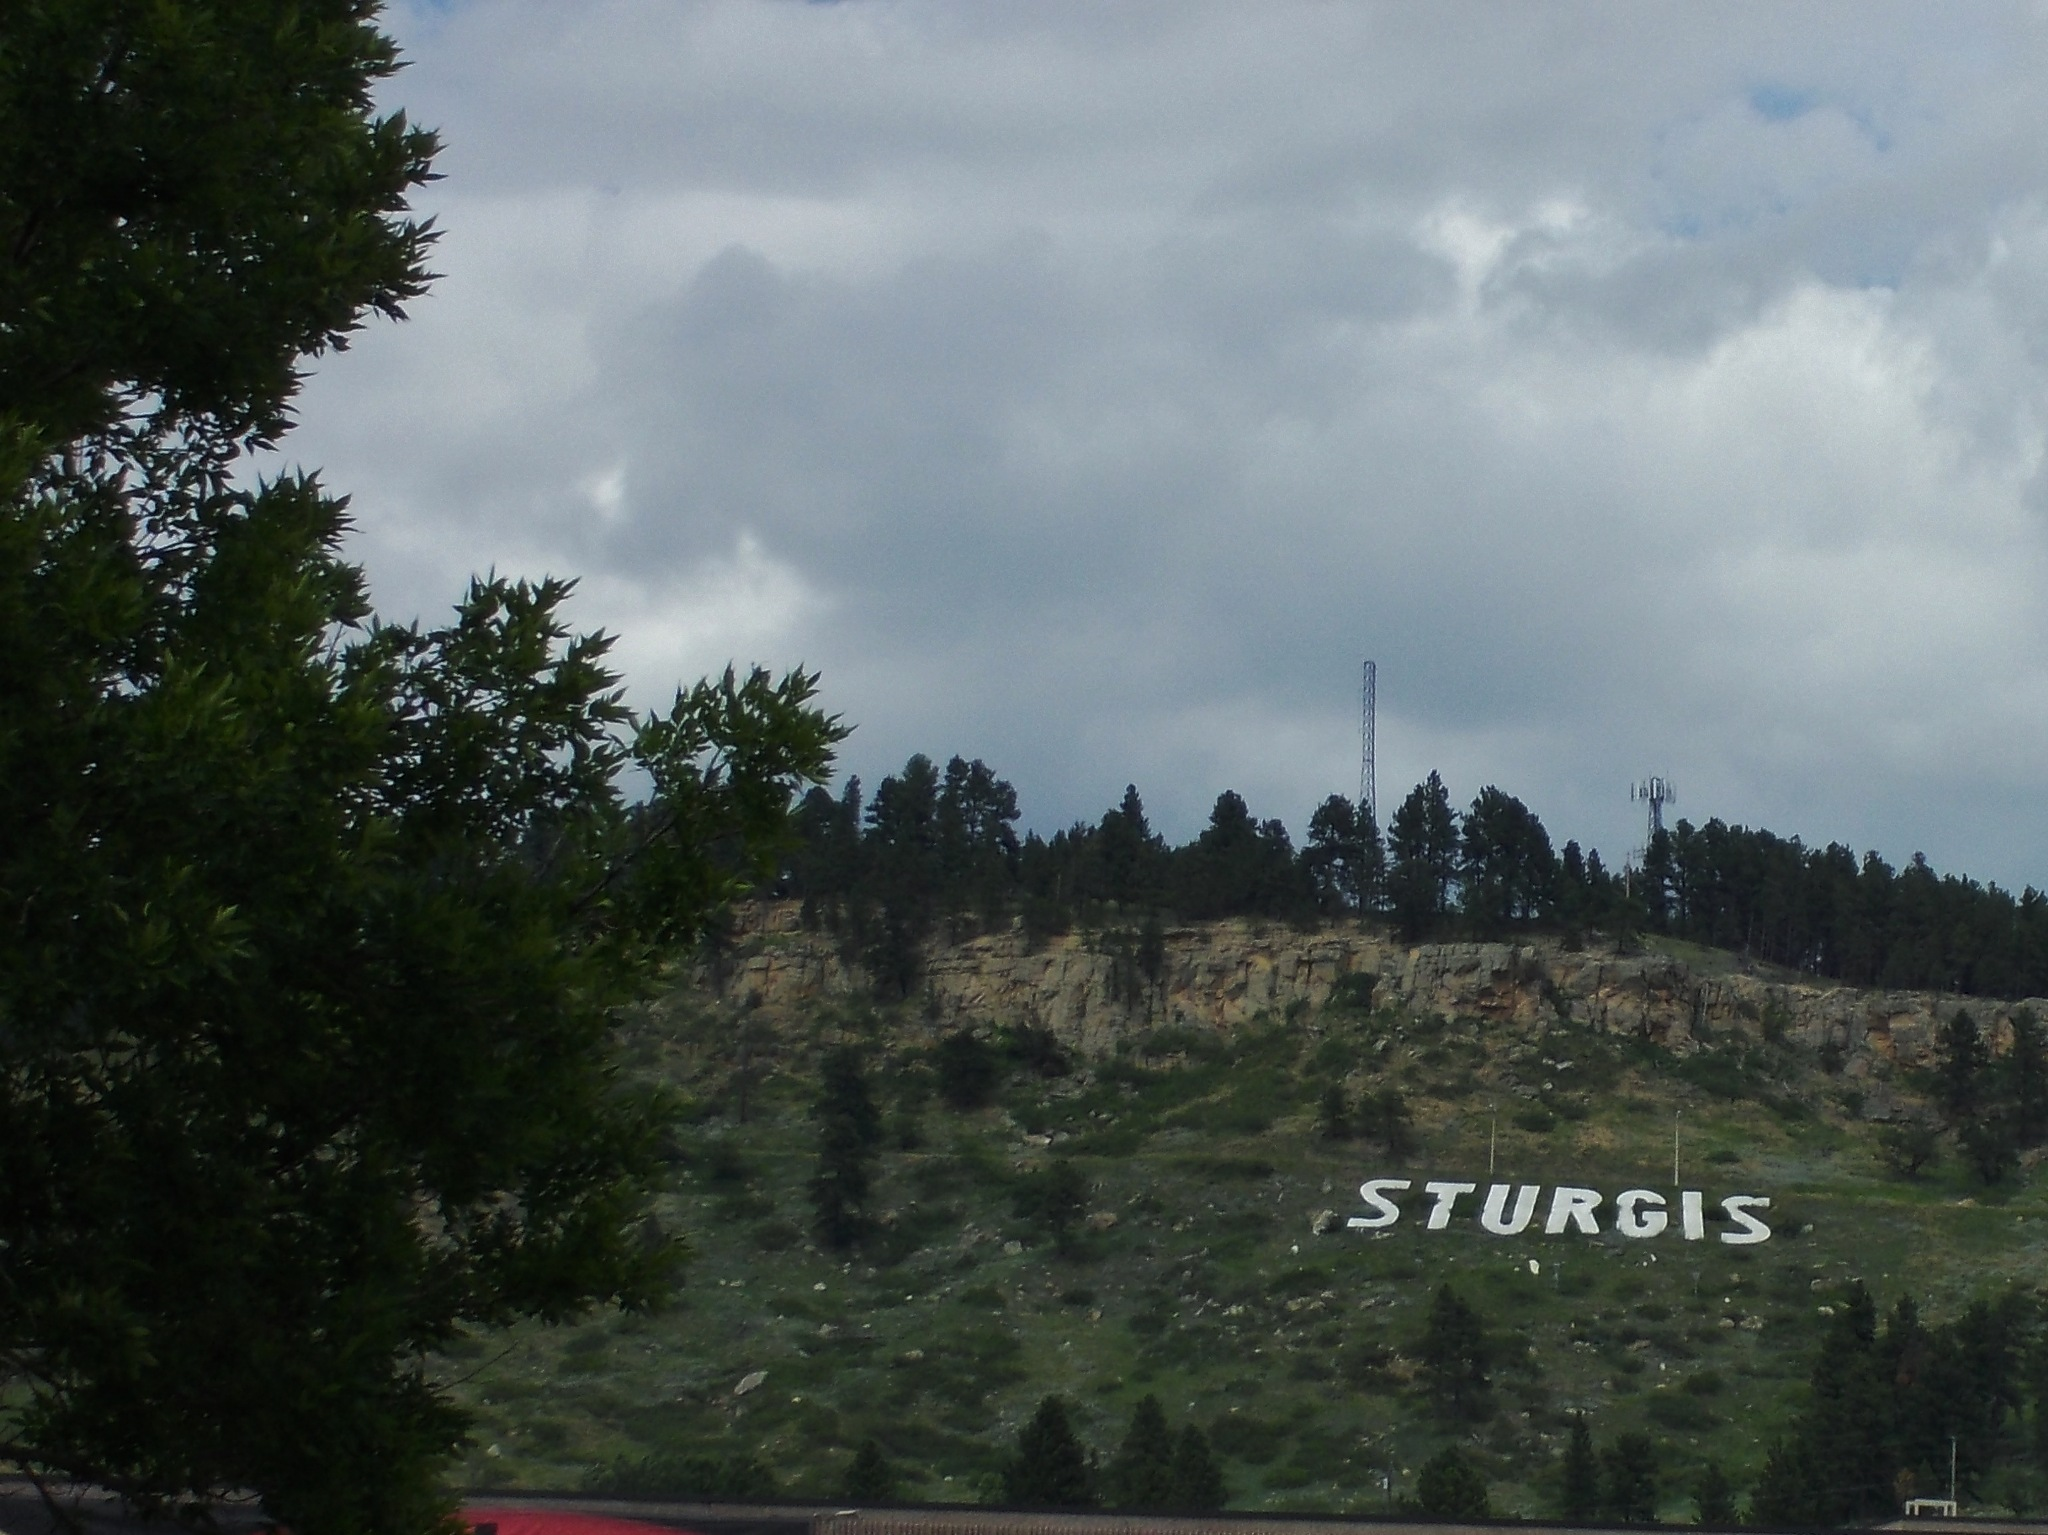 Sturgis S.D. by yehaa_2001